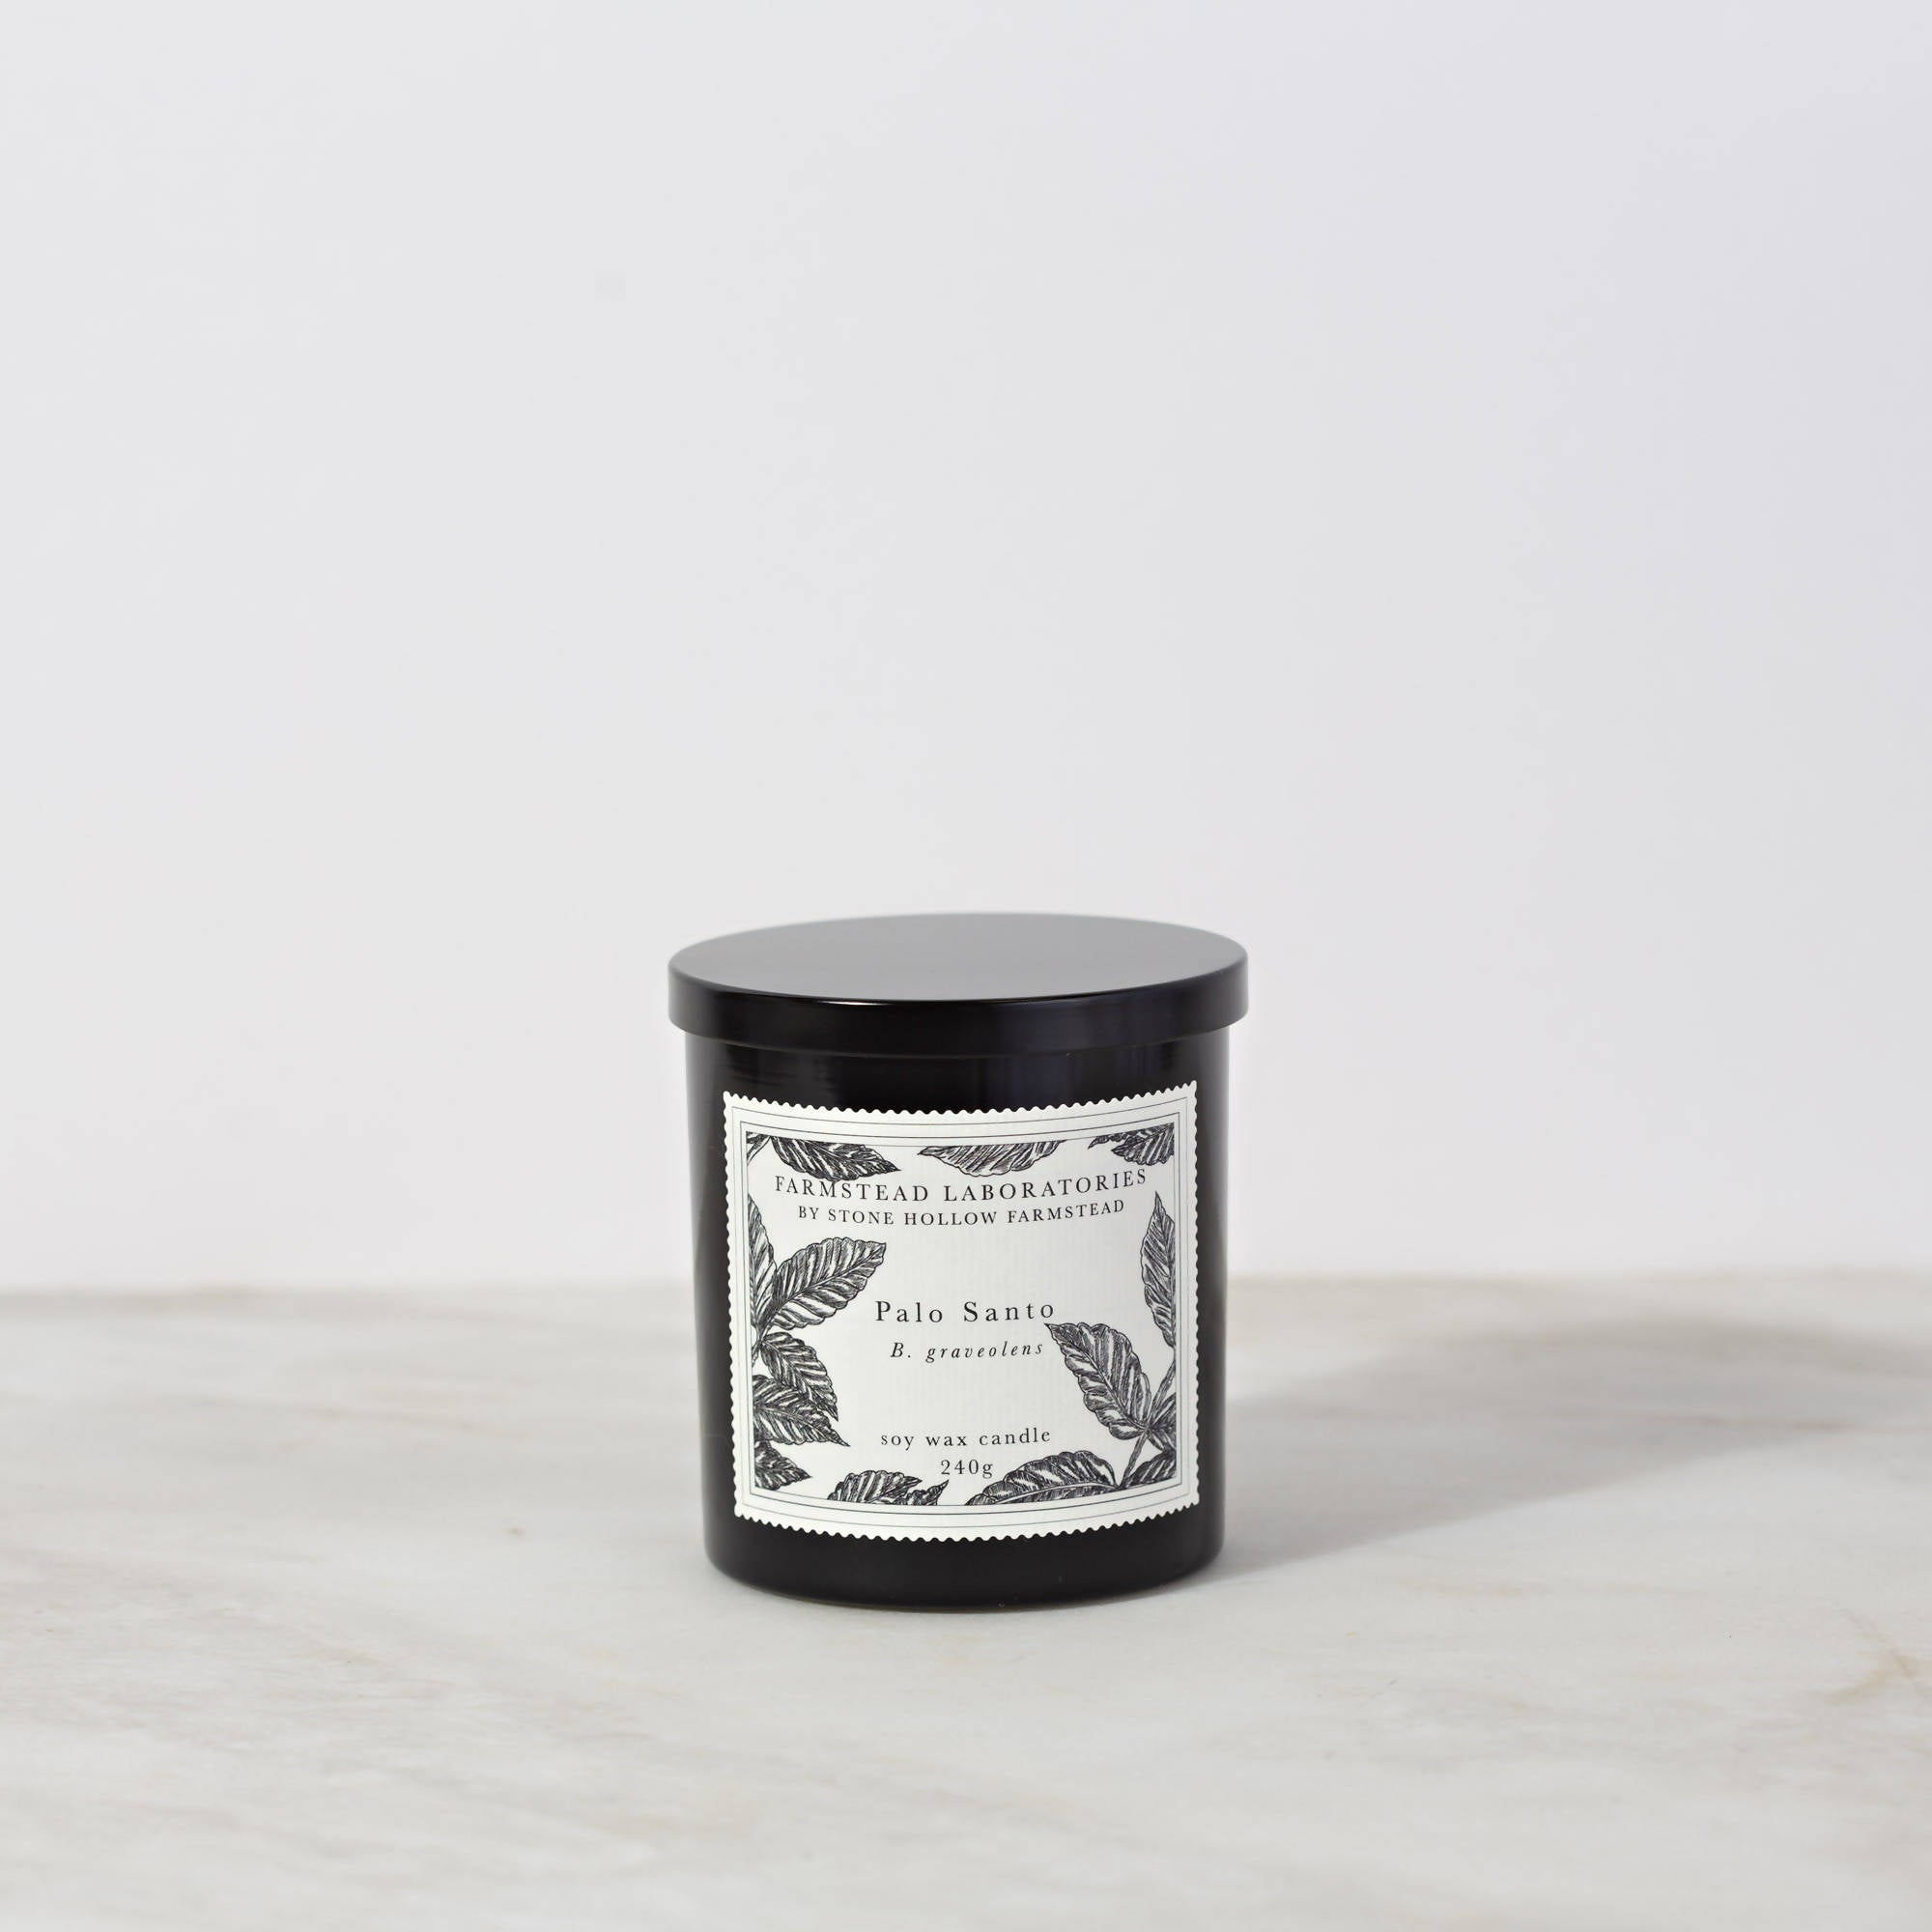 BOTANICAL SOY WAX CANDLE / PALO SANTO